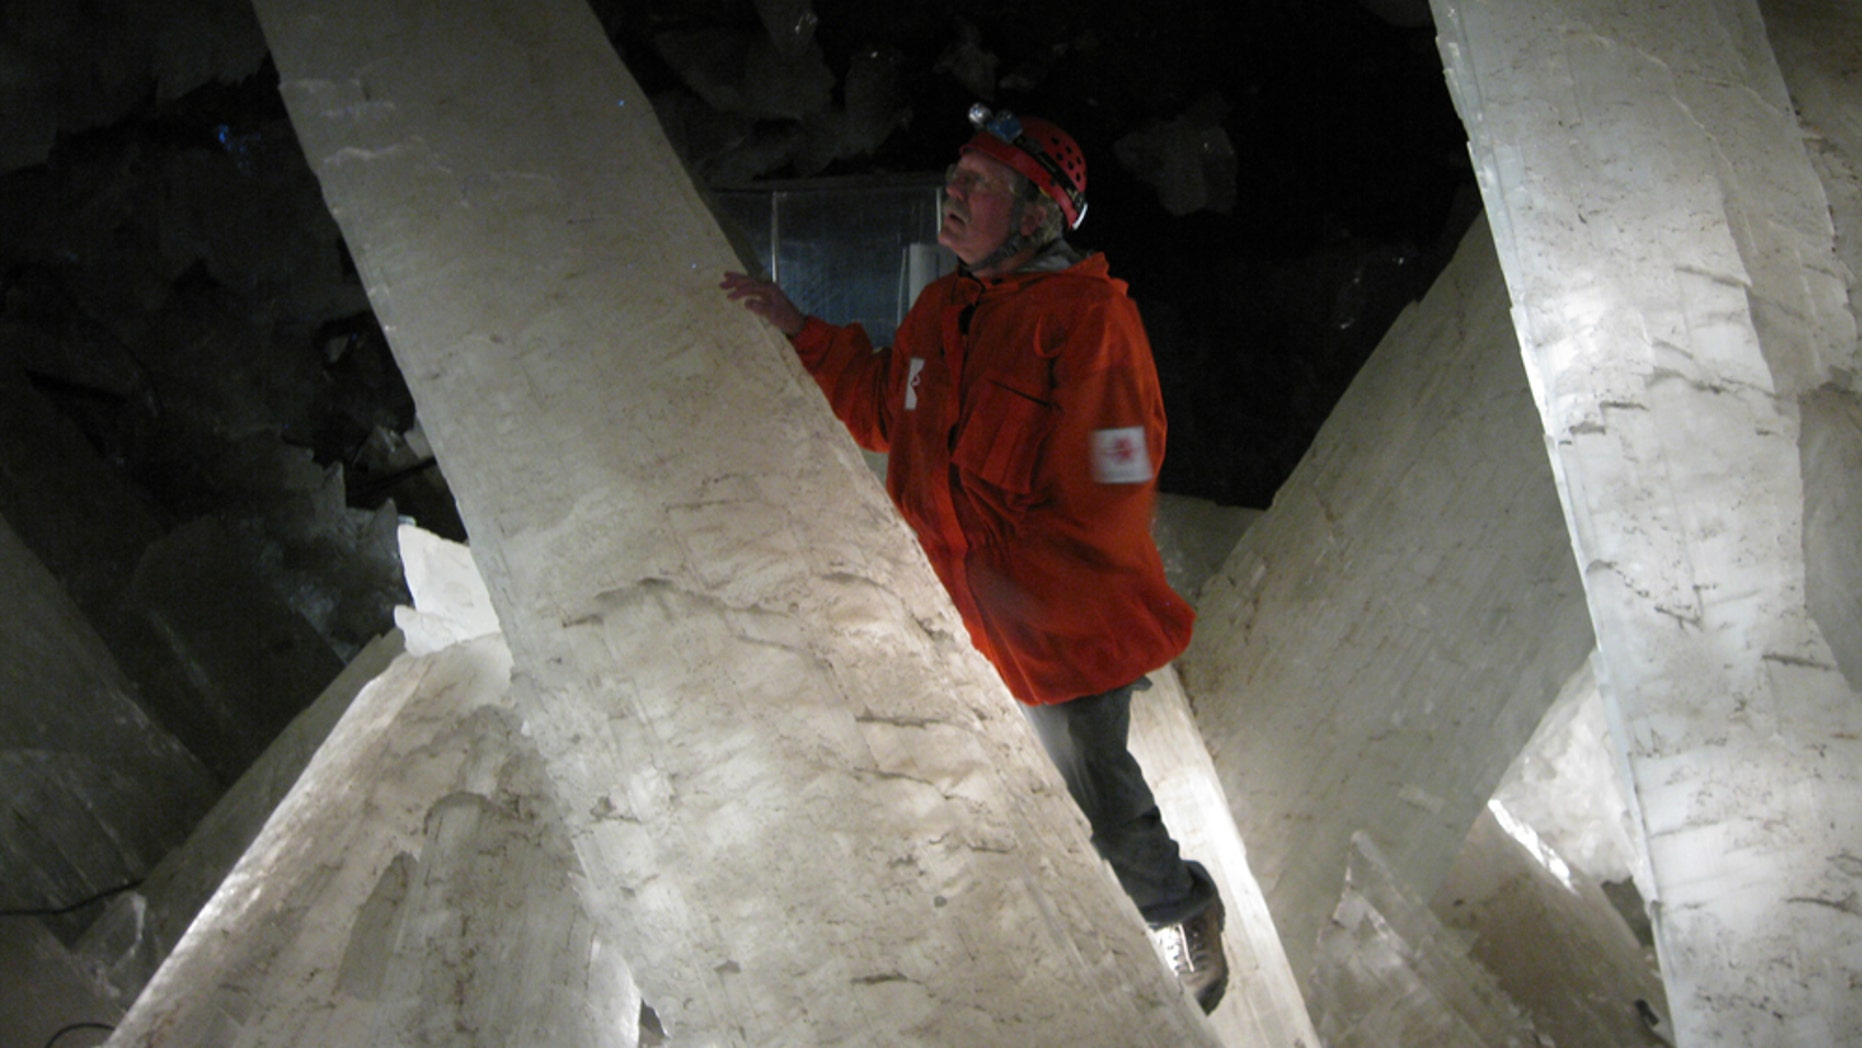 Mike Spilde, a professor at the University of New Mexico, gazes at giant selenite crystals in a chamber in the Naica Mine.